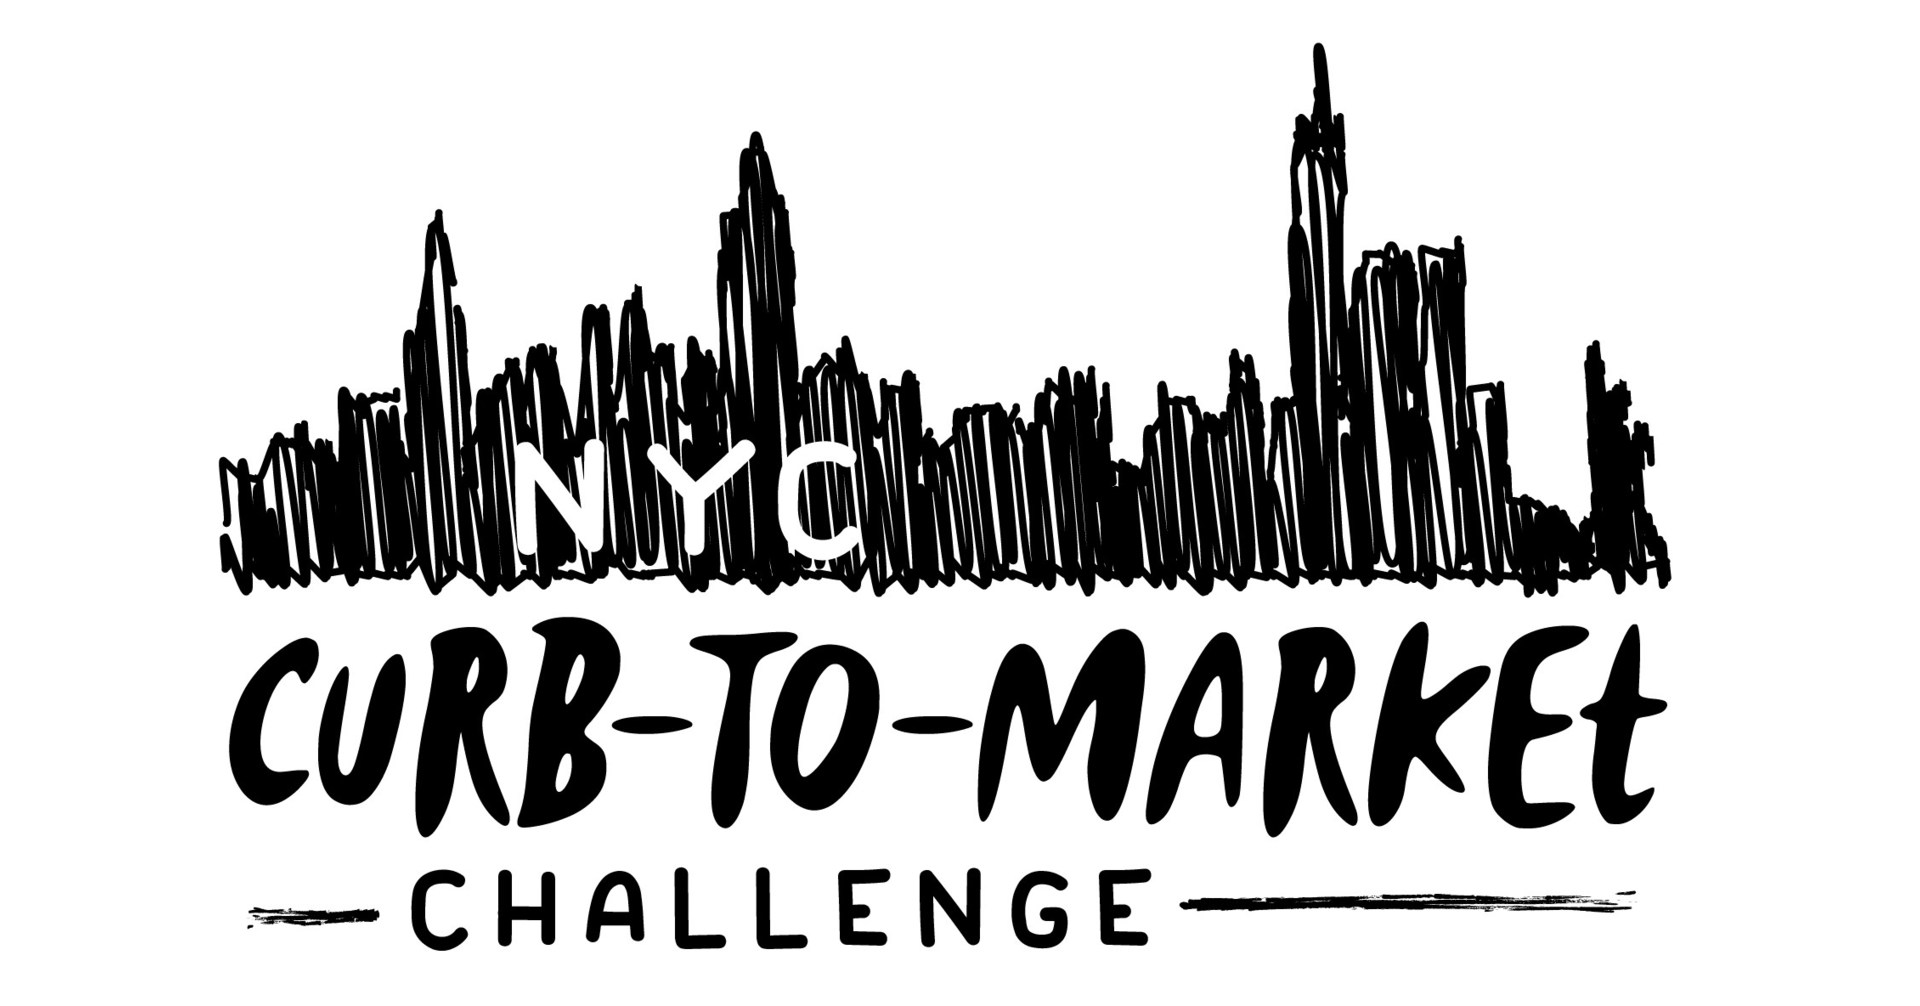 NYC Curb-To-Market Challenge Launches with $500,000 Prize